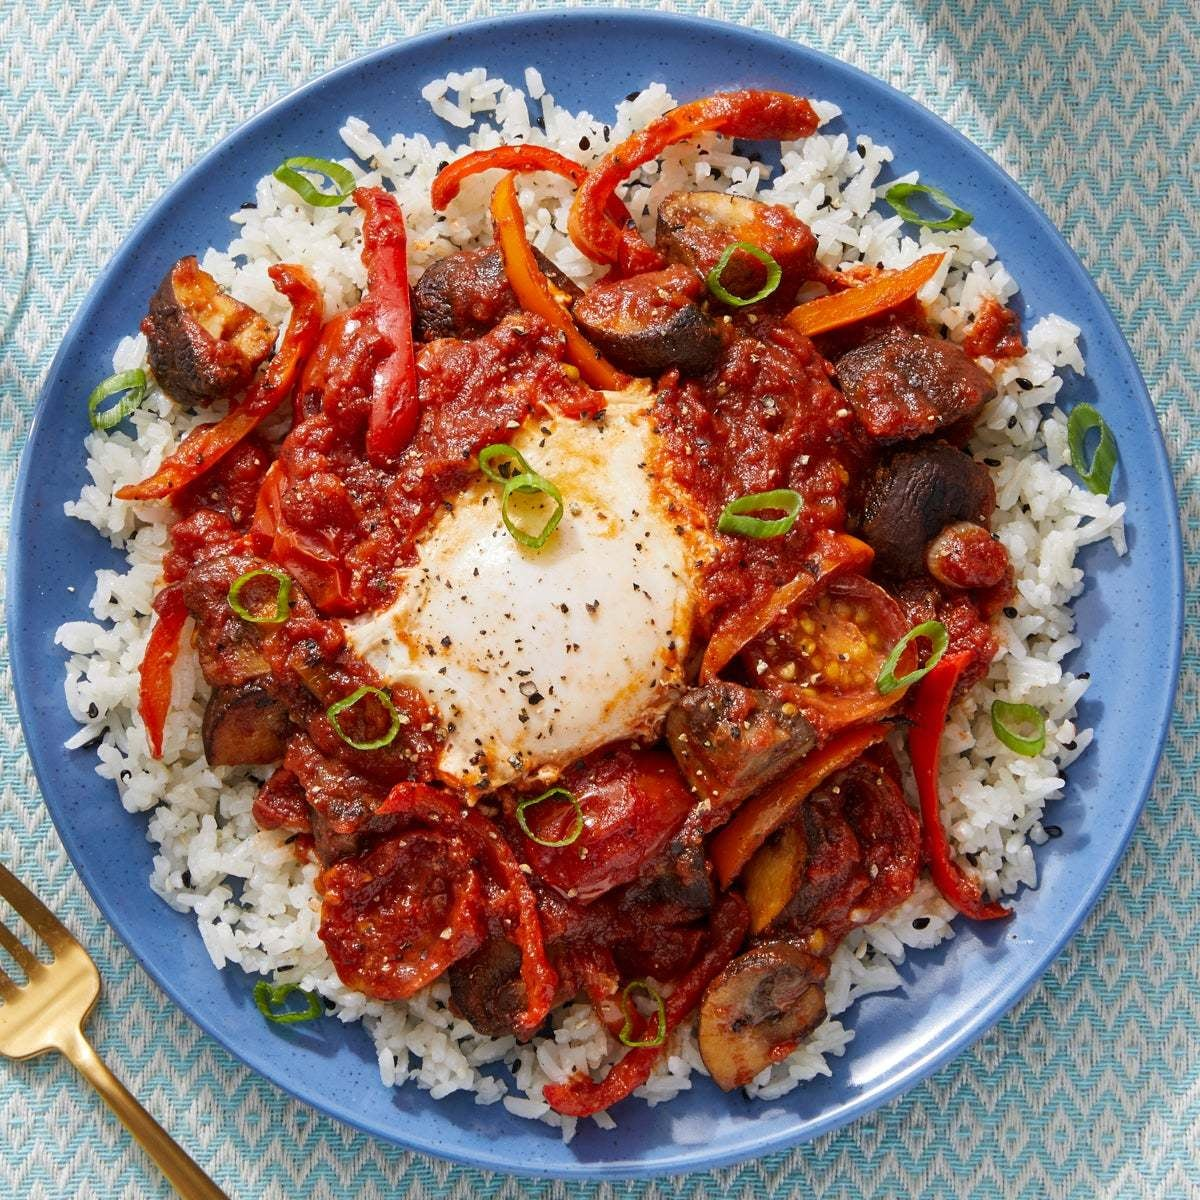 Spicy Egg & Vegetable Skillet with Gochujang-Tomato Sauce & Sesame Rice